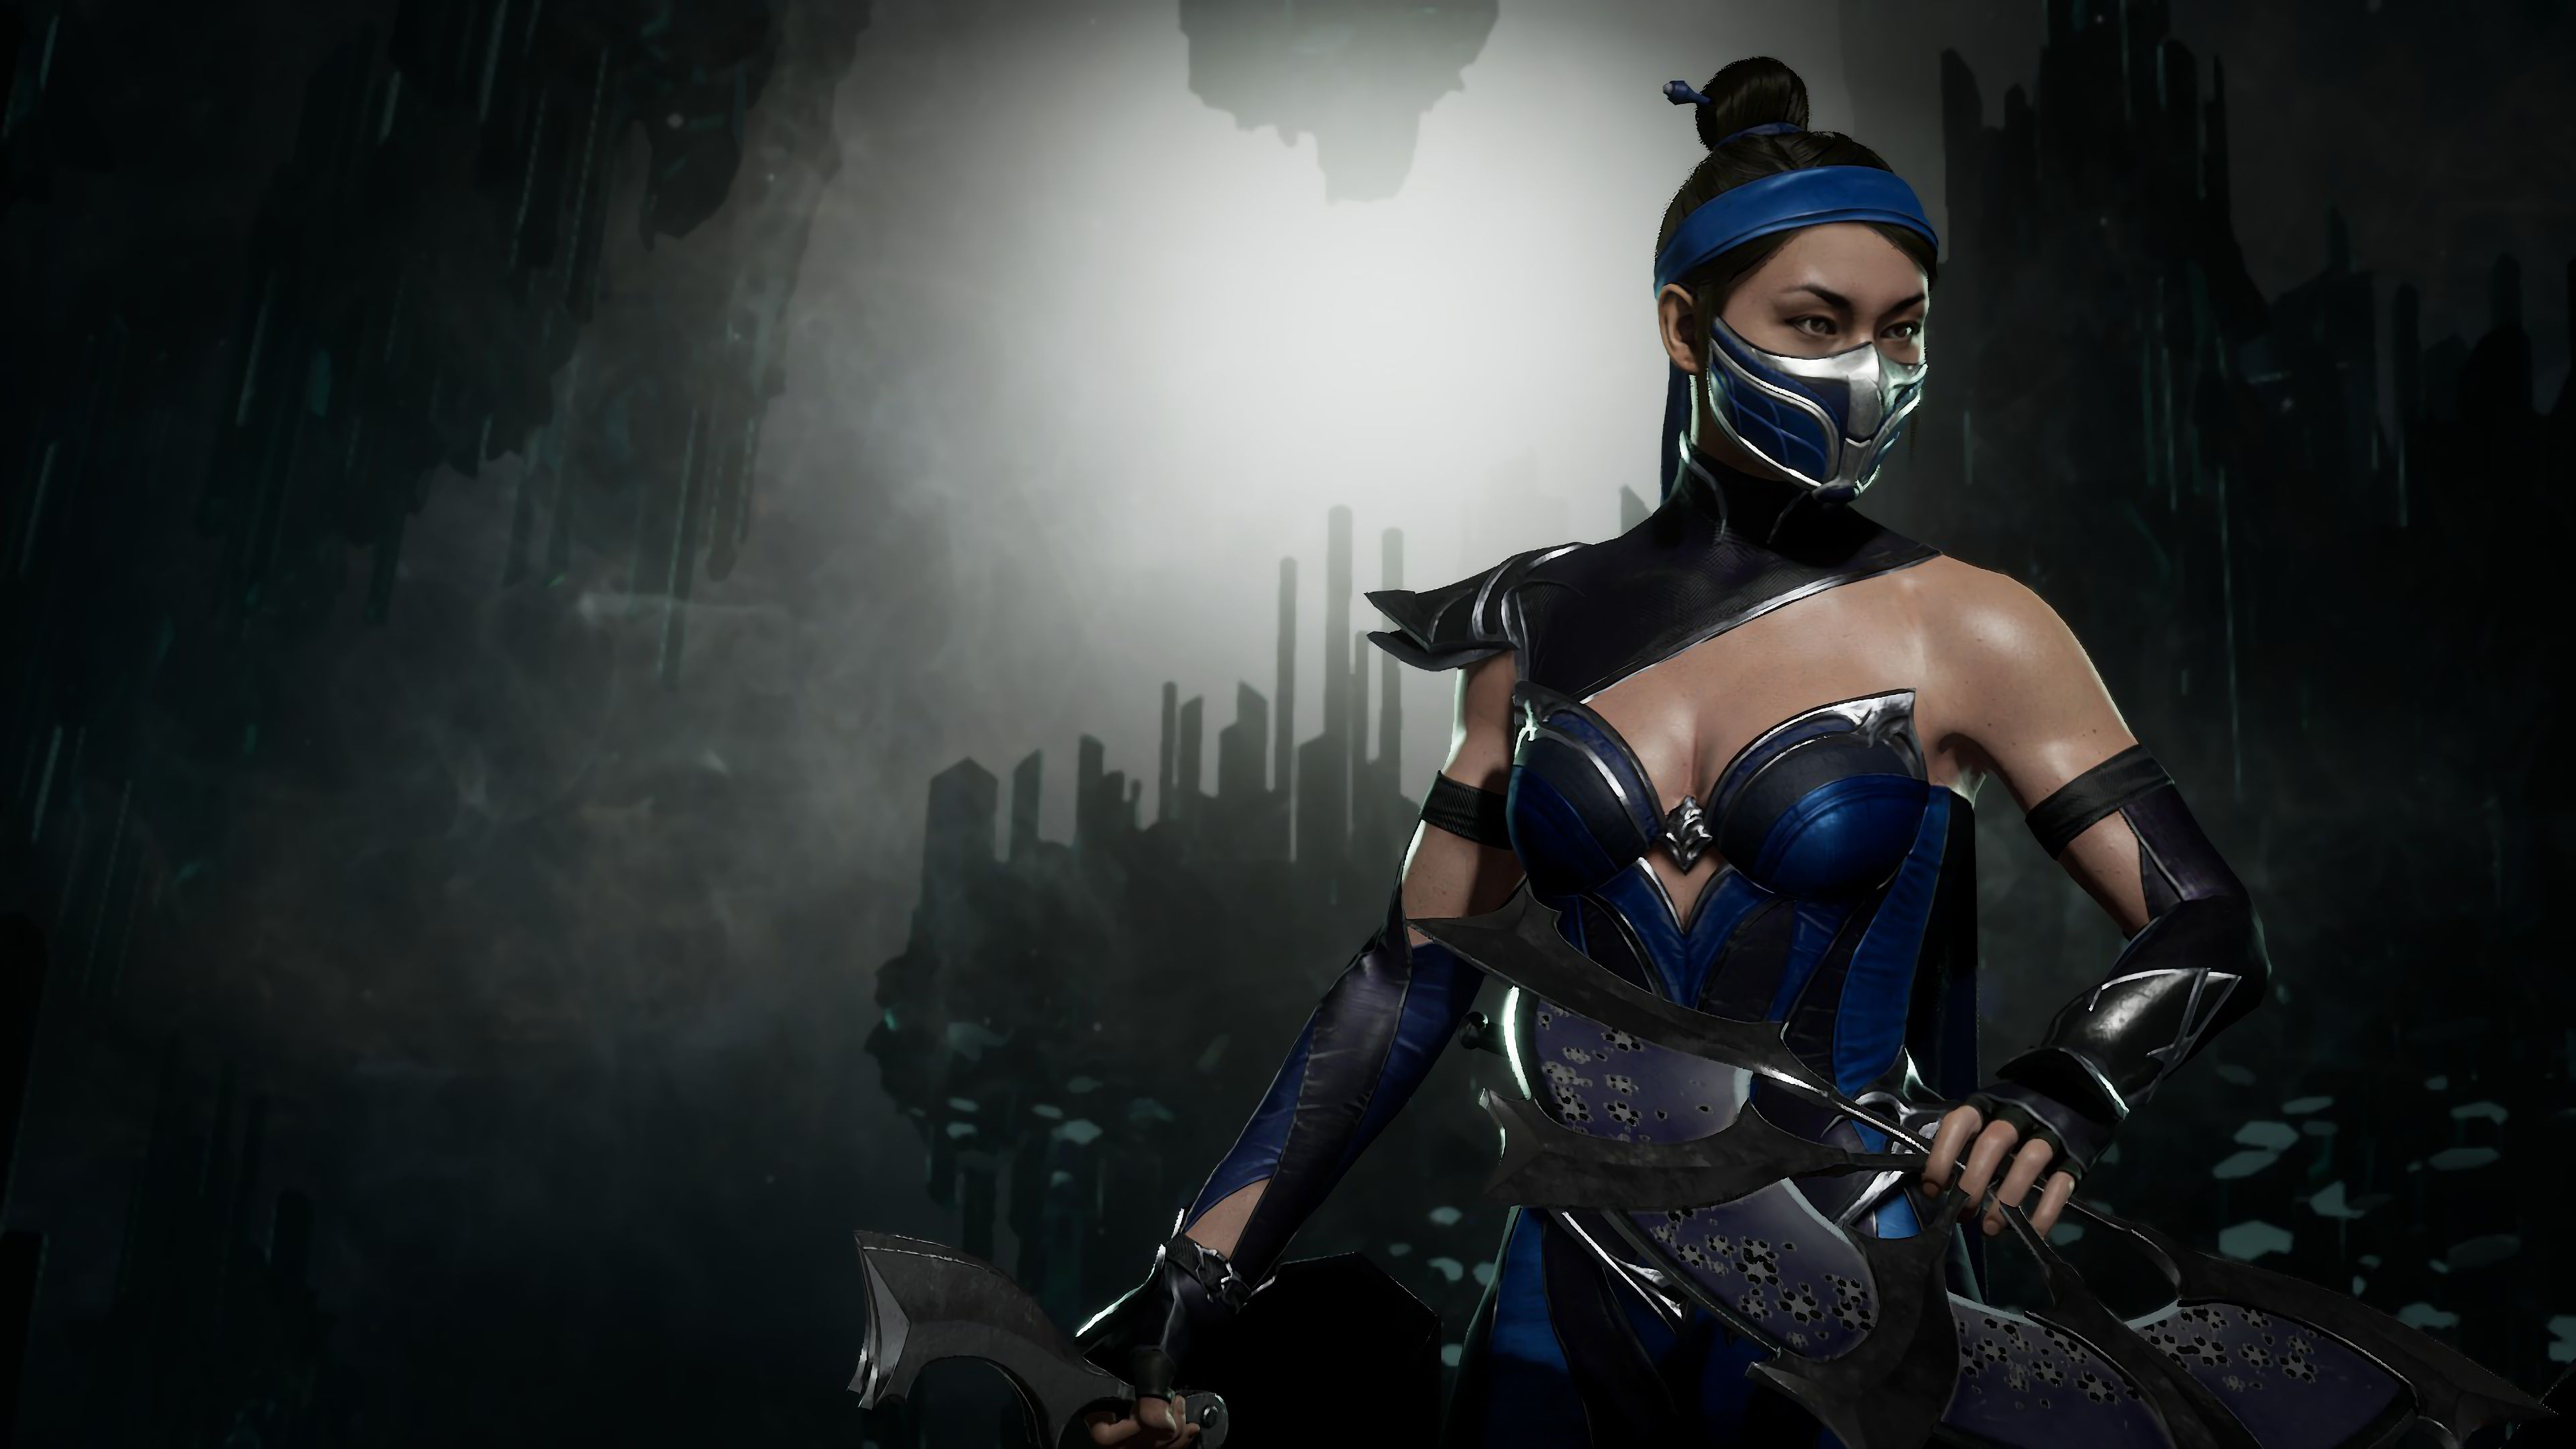 Kitana Mortal Kombat Wallpapers Top Free Kitana Mortal Kombat